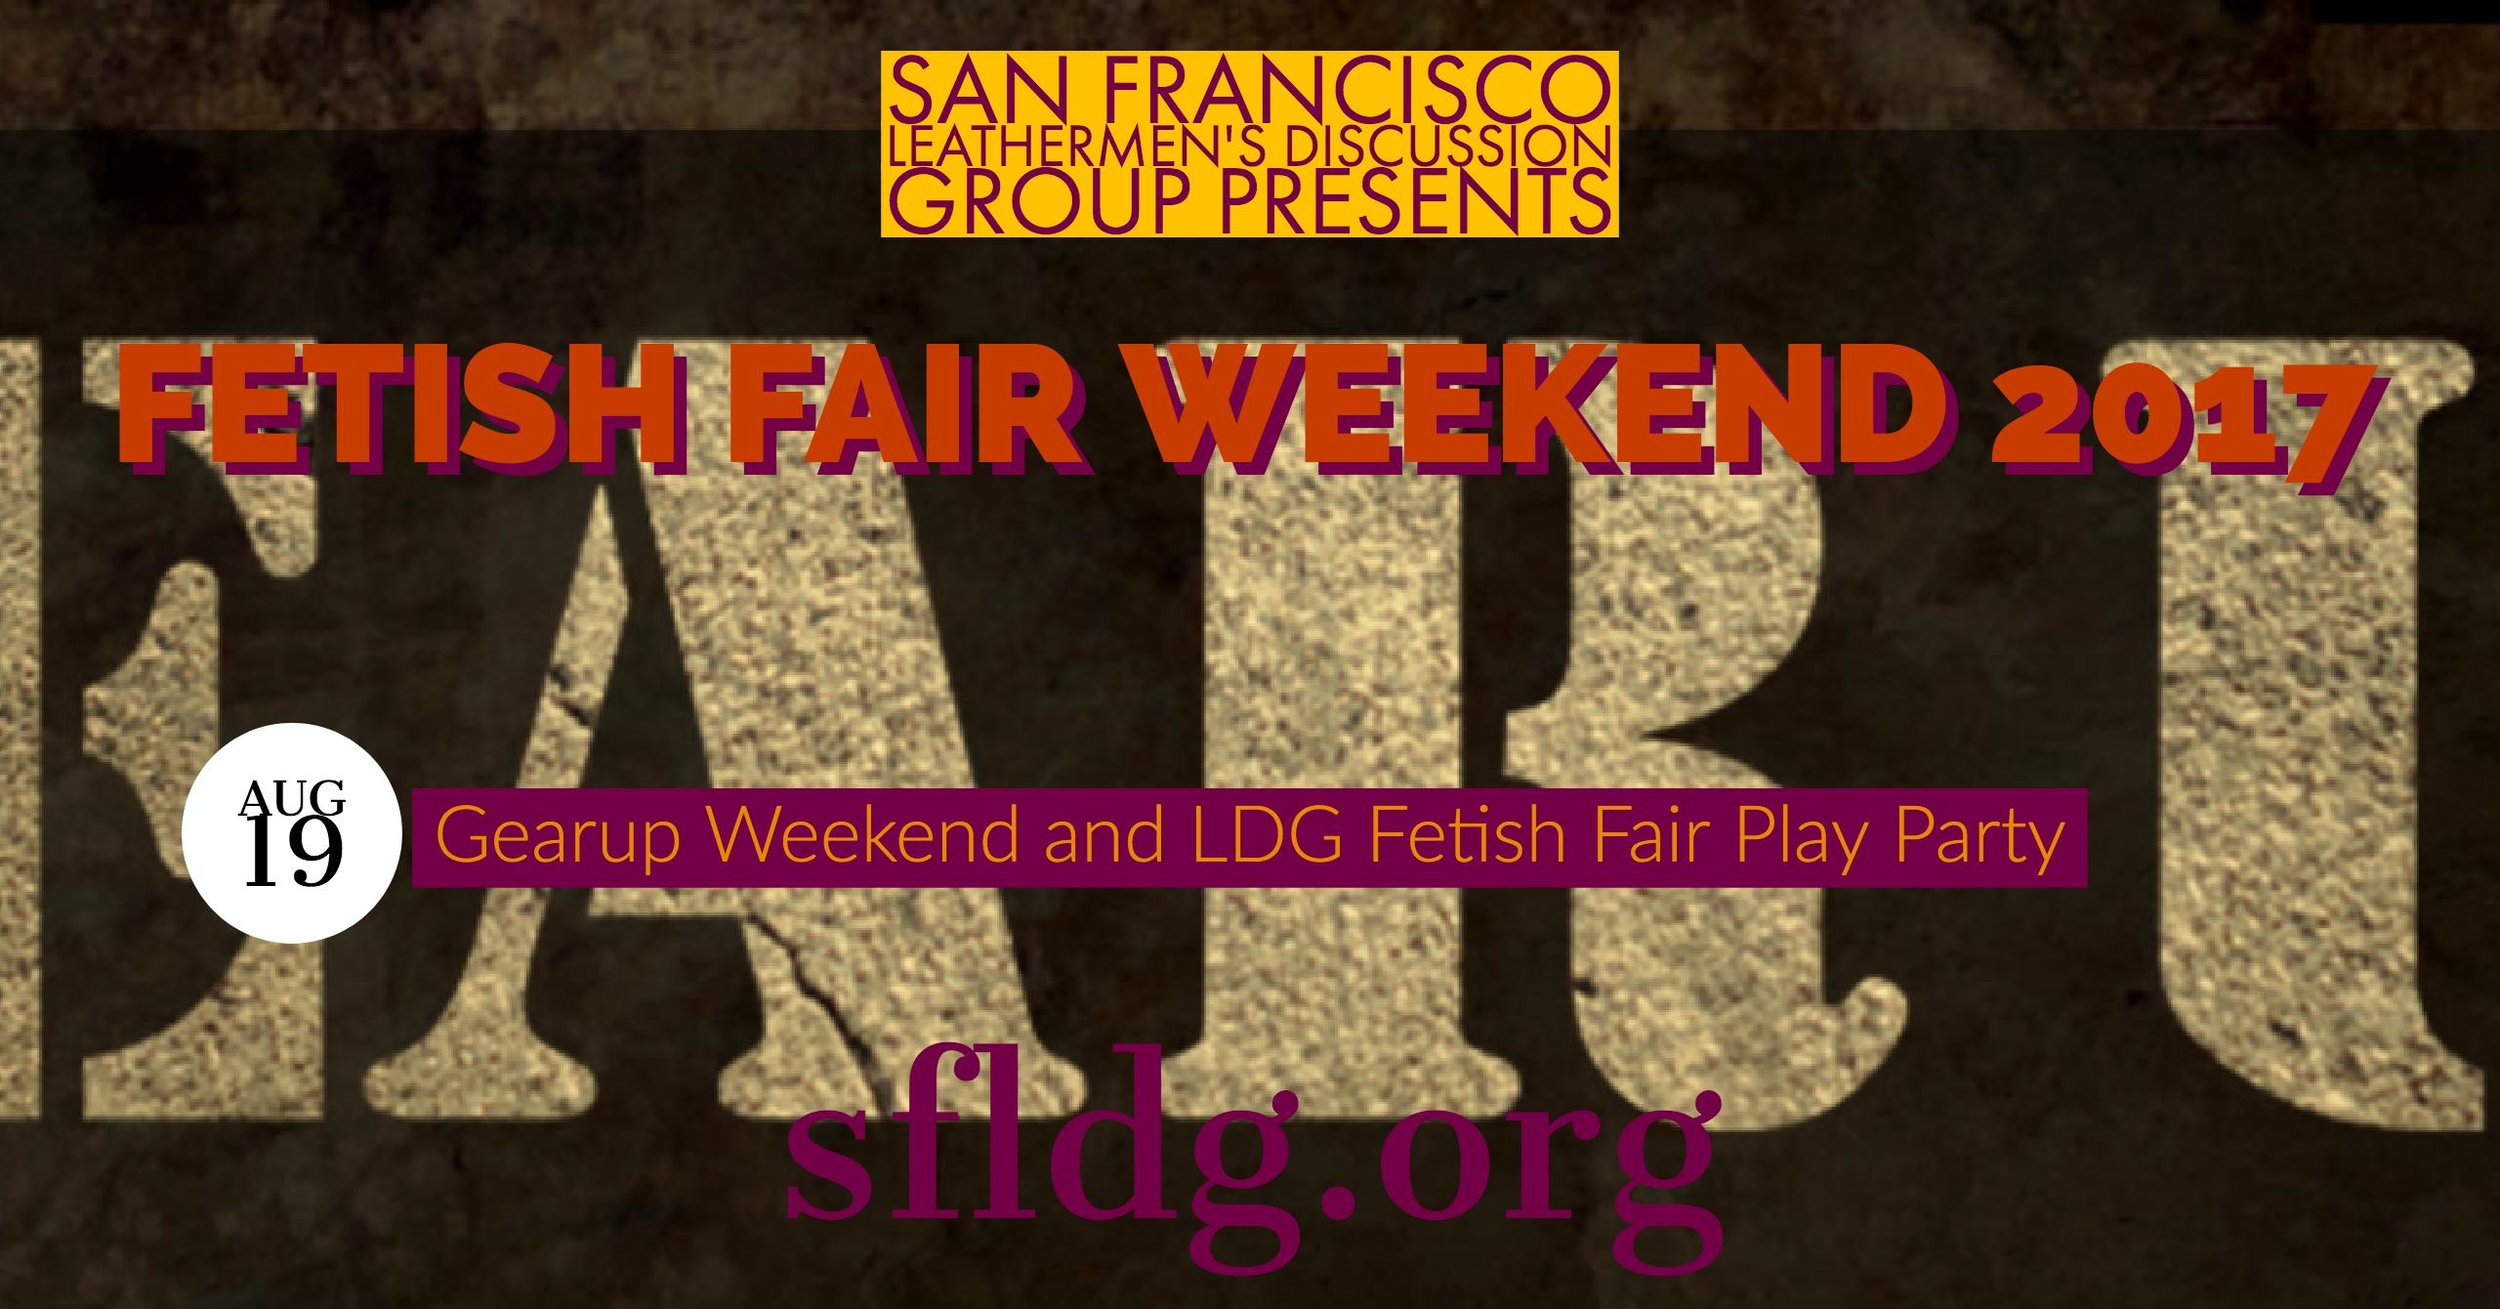 Gearup Weekend and LDG Fetish Fair Play Party   Saturday, August 19 at 9:30 PM - 1 AM  SF Catalyst - 1060 Folsom Street, San Francisco, California 94102   https://www.facebook.com/events/160457551179877/   You are invited to one of the hottest, funnest, men-only play parties in San Francisco on Saturday, August 19th, immediately following LDG Fetish Fair. Join the men of Gearup Weekend and SF LDG for a night of kinky fun at SF Catalyst, located at 1060 Folsom Street in San Francisco. The doors will remain open until 1130 PM, with play until 100 am. You must be 18 or over to attend.  Clothing check will be provided by the SOMA Guardians. To volunteer go to  https://www.volunteersignup.org/4PXBF  Entrance fee schedule: General admission $20.00 Military, student (ID required); and play party first timers: $10.00 Volunteers: FREE